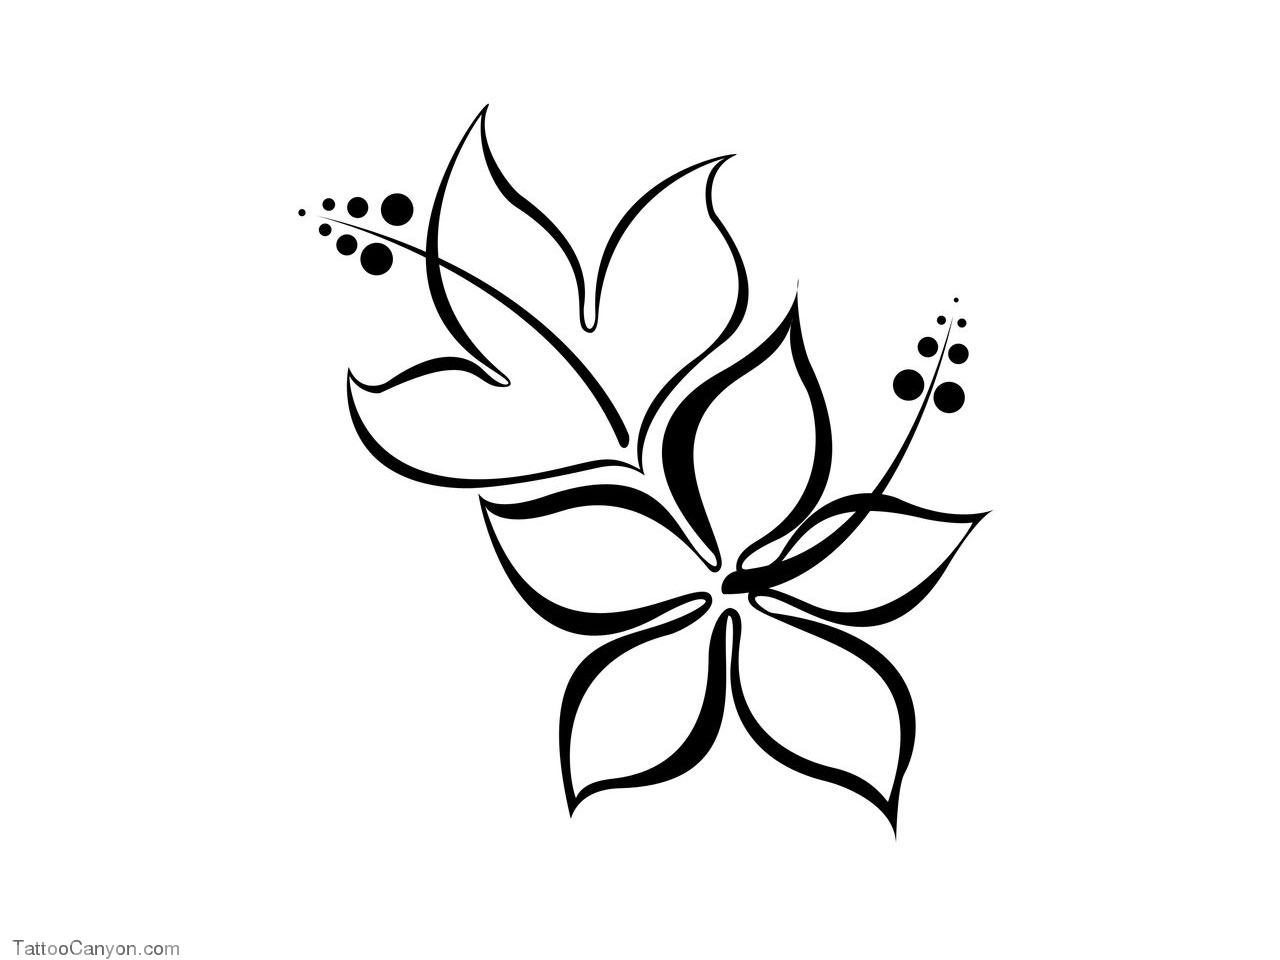 1280x960 A Simple Of A Hawaiian Flower() That I'M Thinking Of Getting